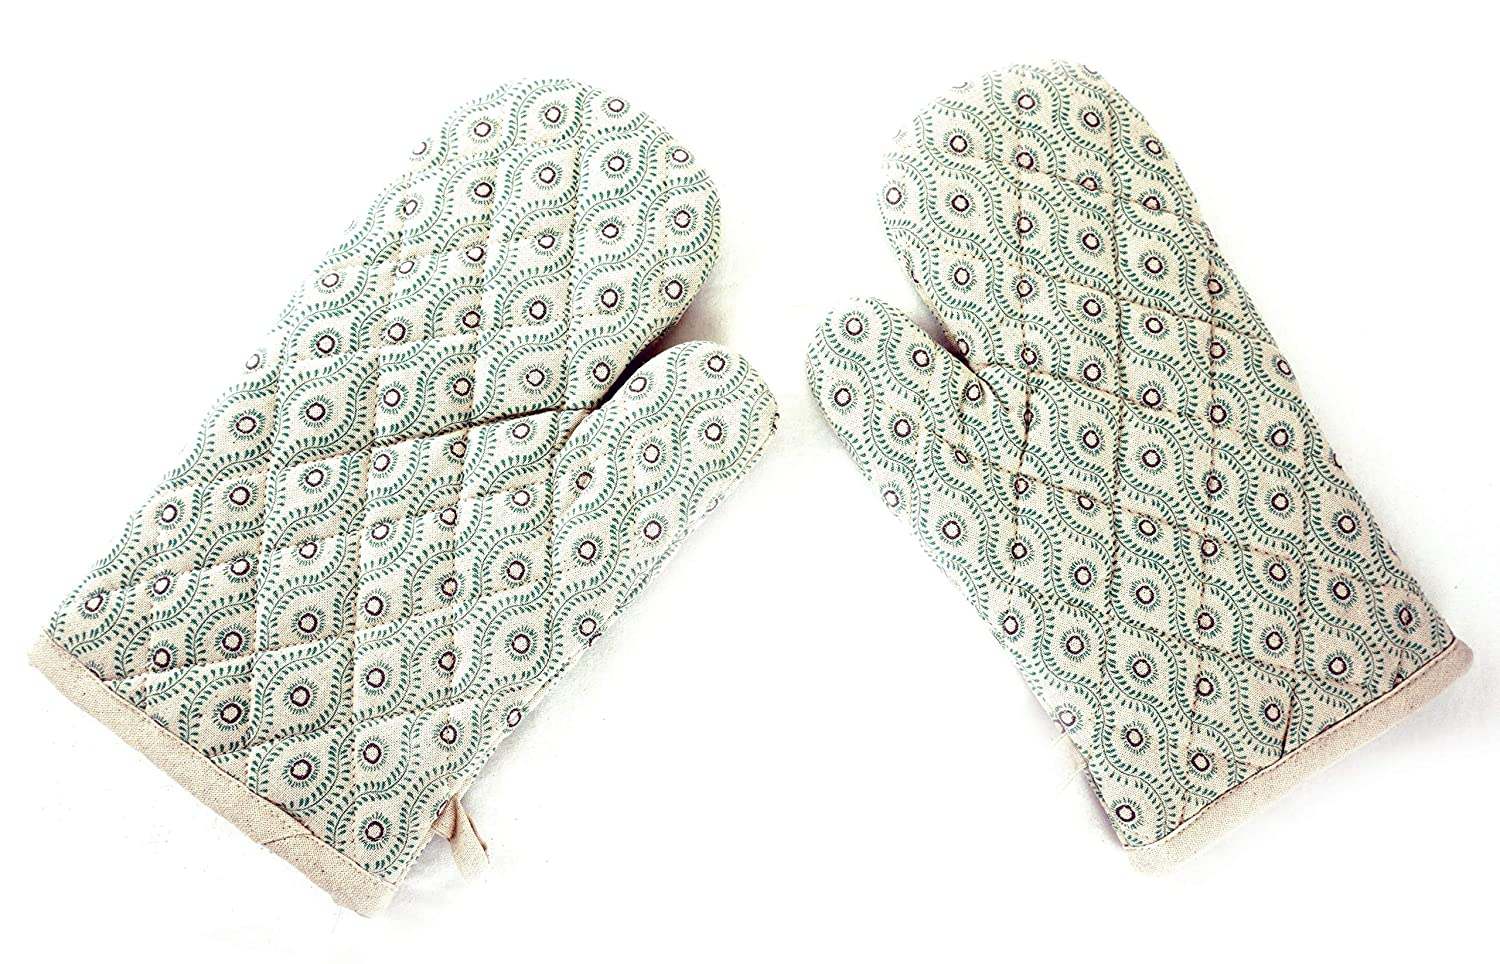 Creative Co-op Floral Leaves Mint Green Quilted Oven Mitts - Set of 2